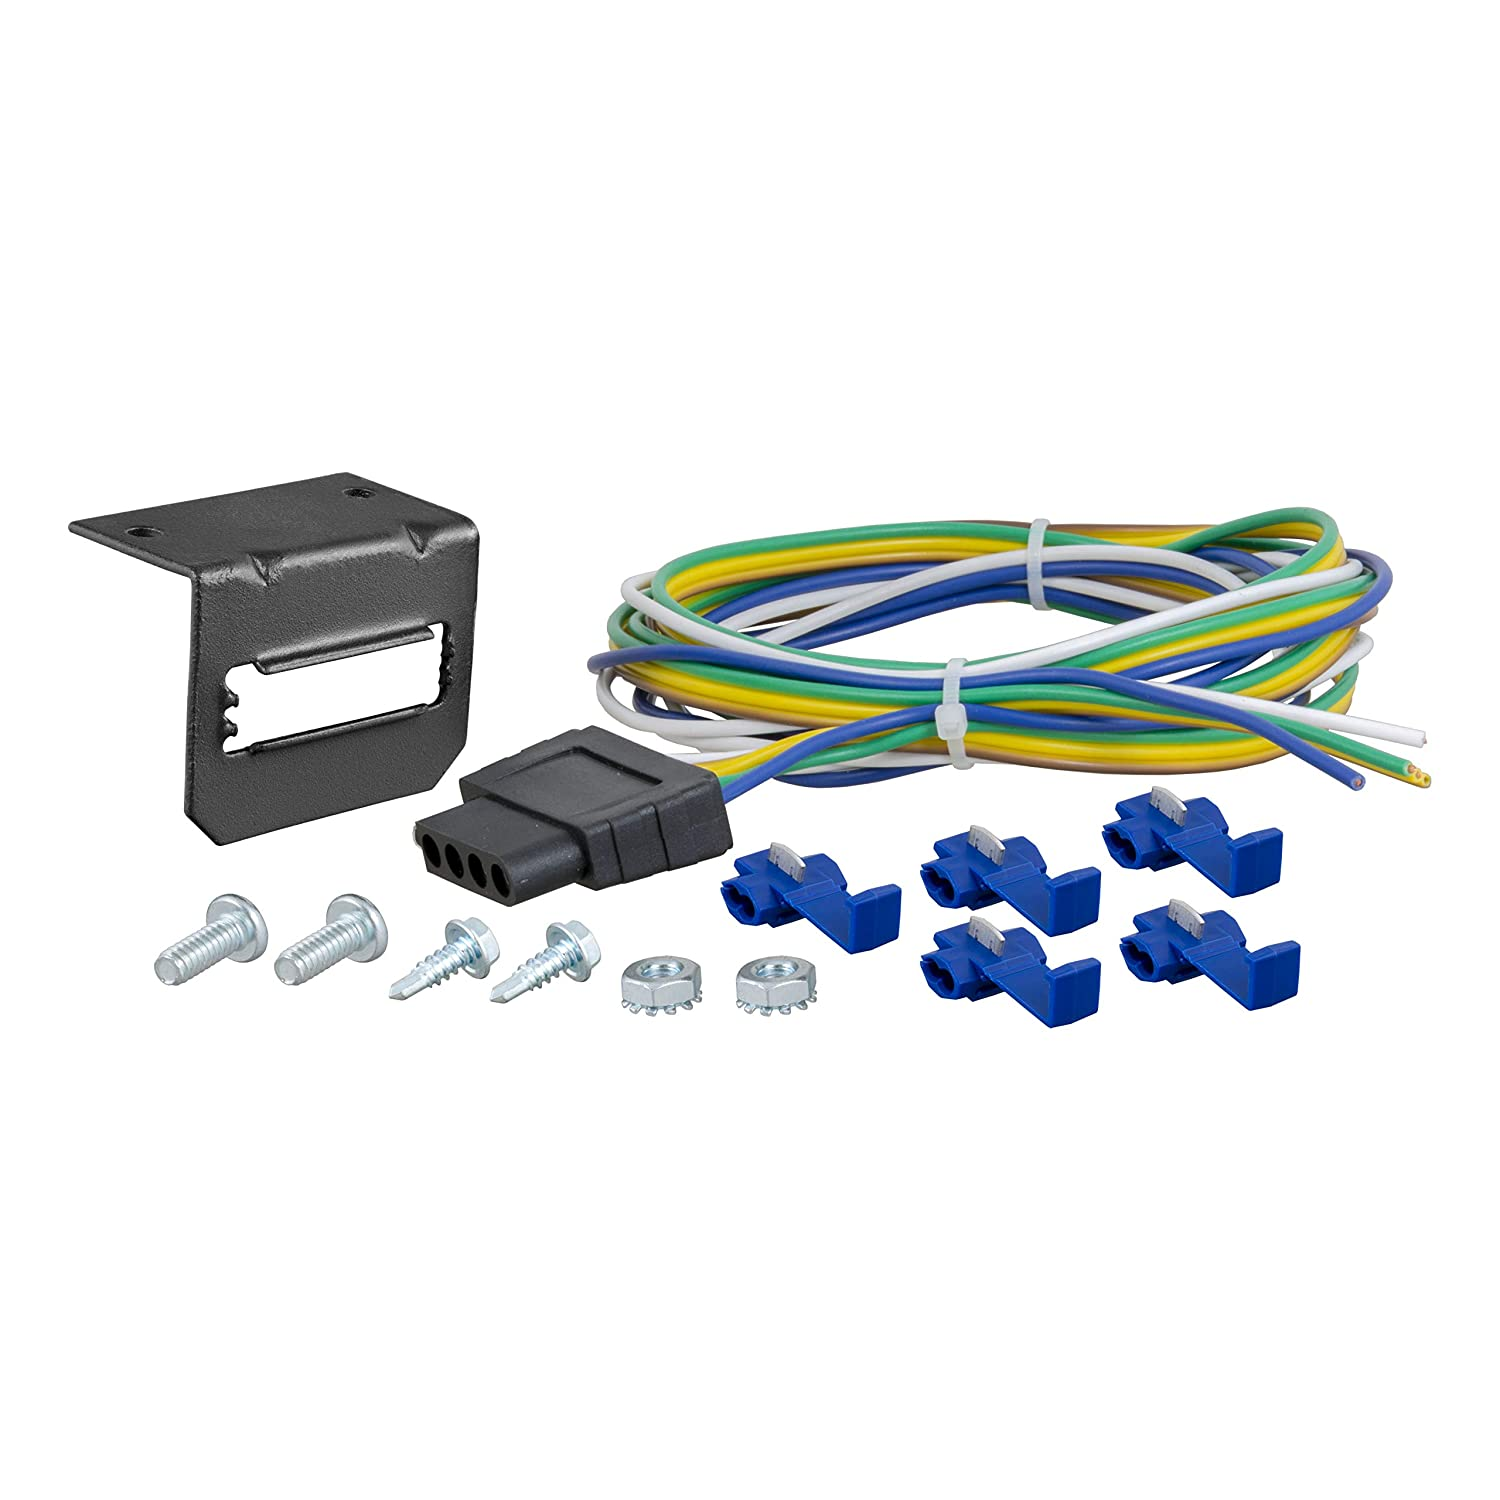 Amazon.com: CURT 58545 Vehicle-Side 5-Pin Trailer Wiring ... on